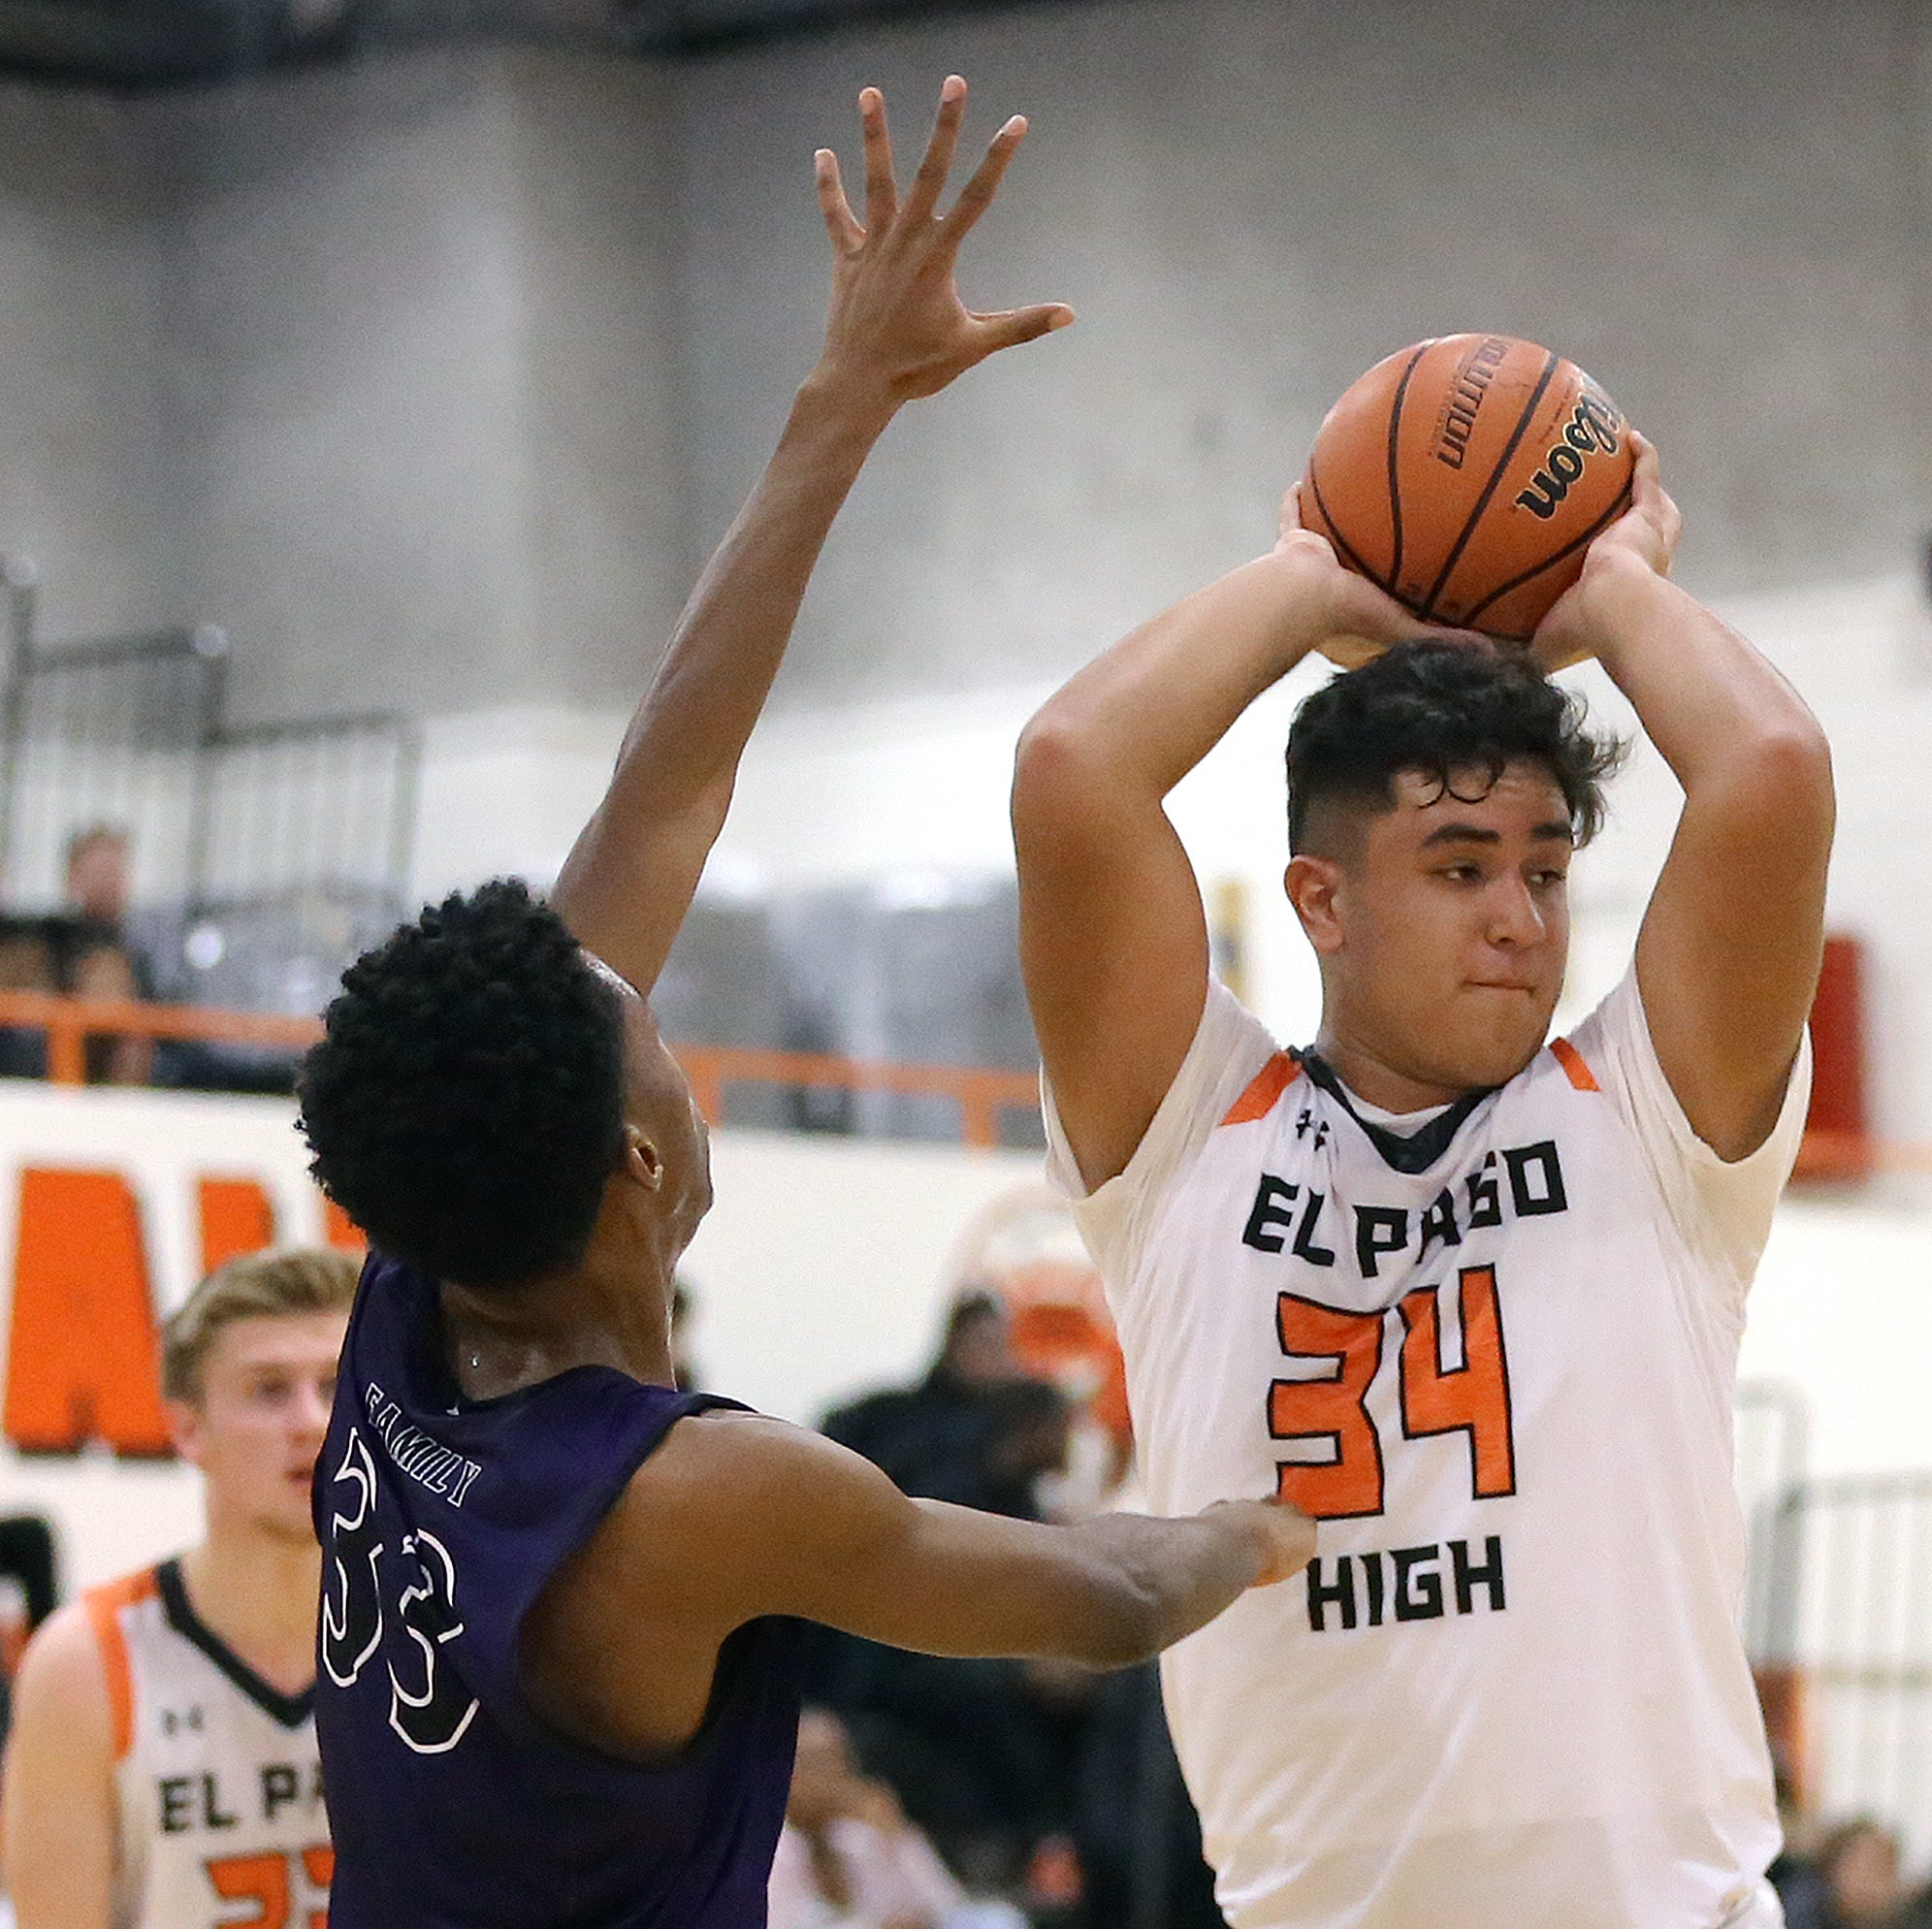 El Paso High held off Franklin to win the 2018 CD Jarvis Basketball Tournament Saturday at El Paso High School.